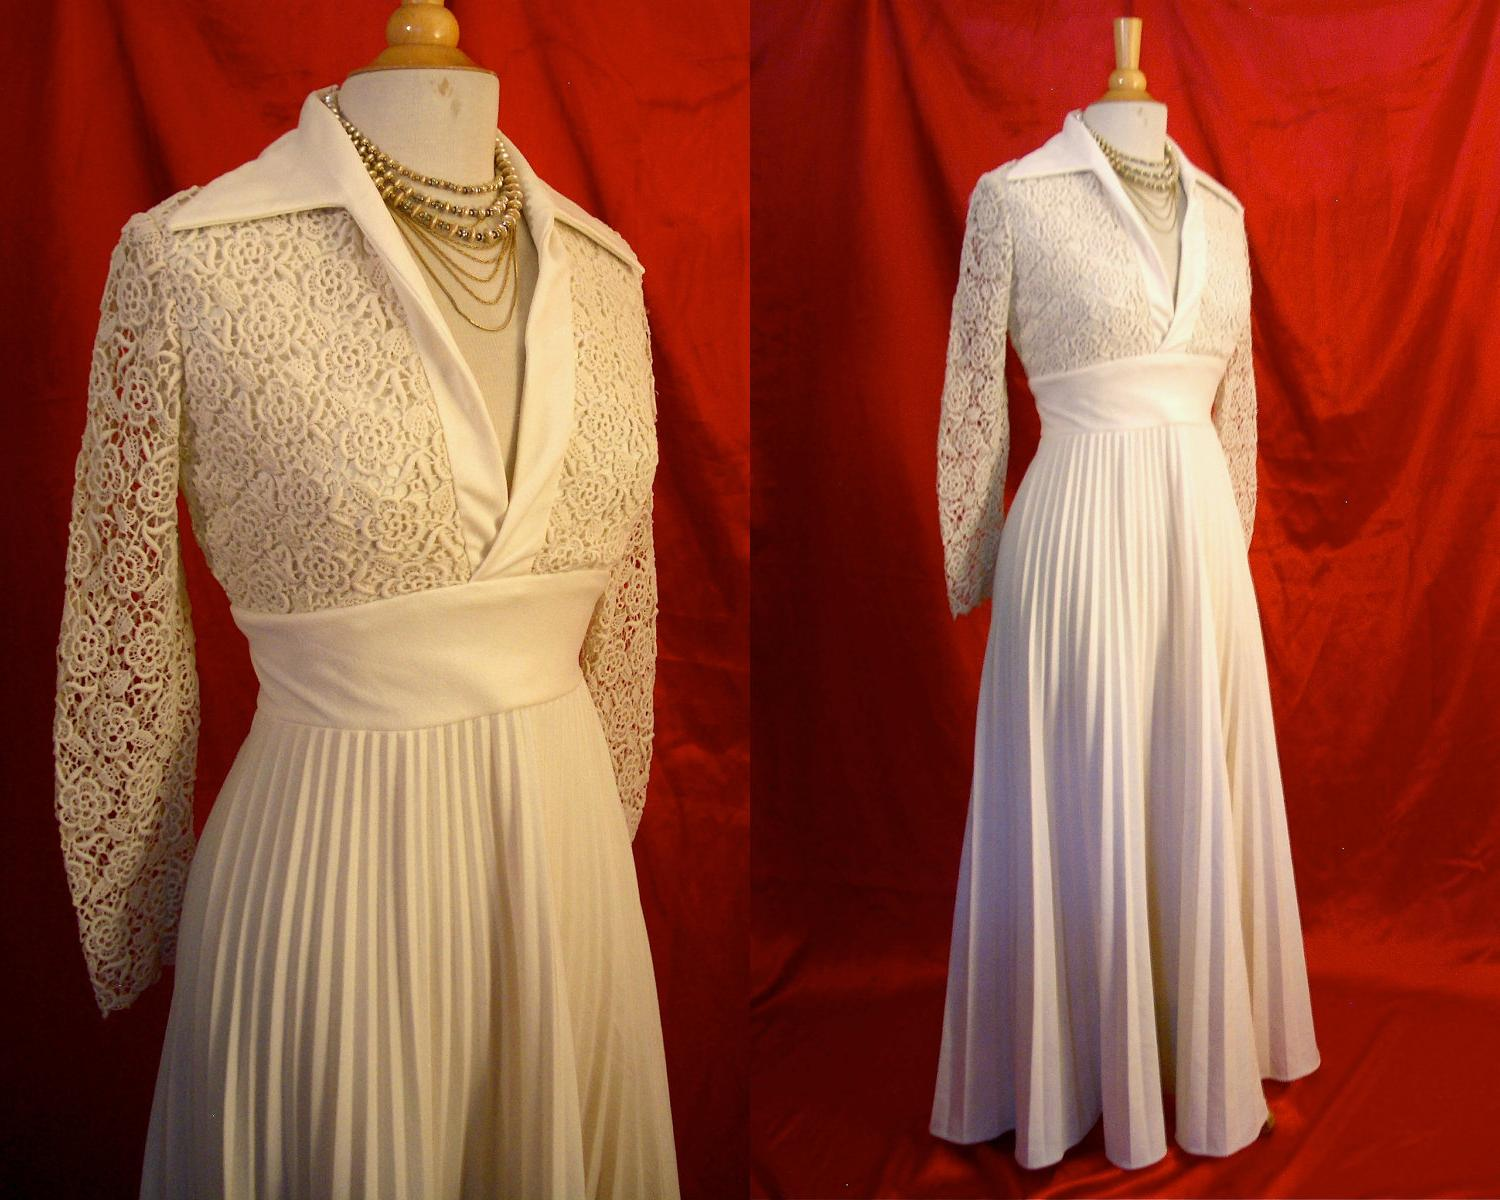 Formal - Beach Wedding - For Size Small to Medium Sophisticated Starlets